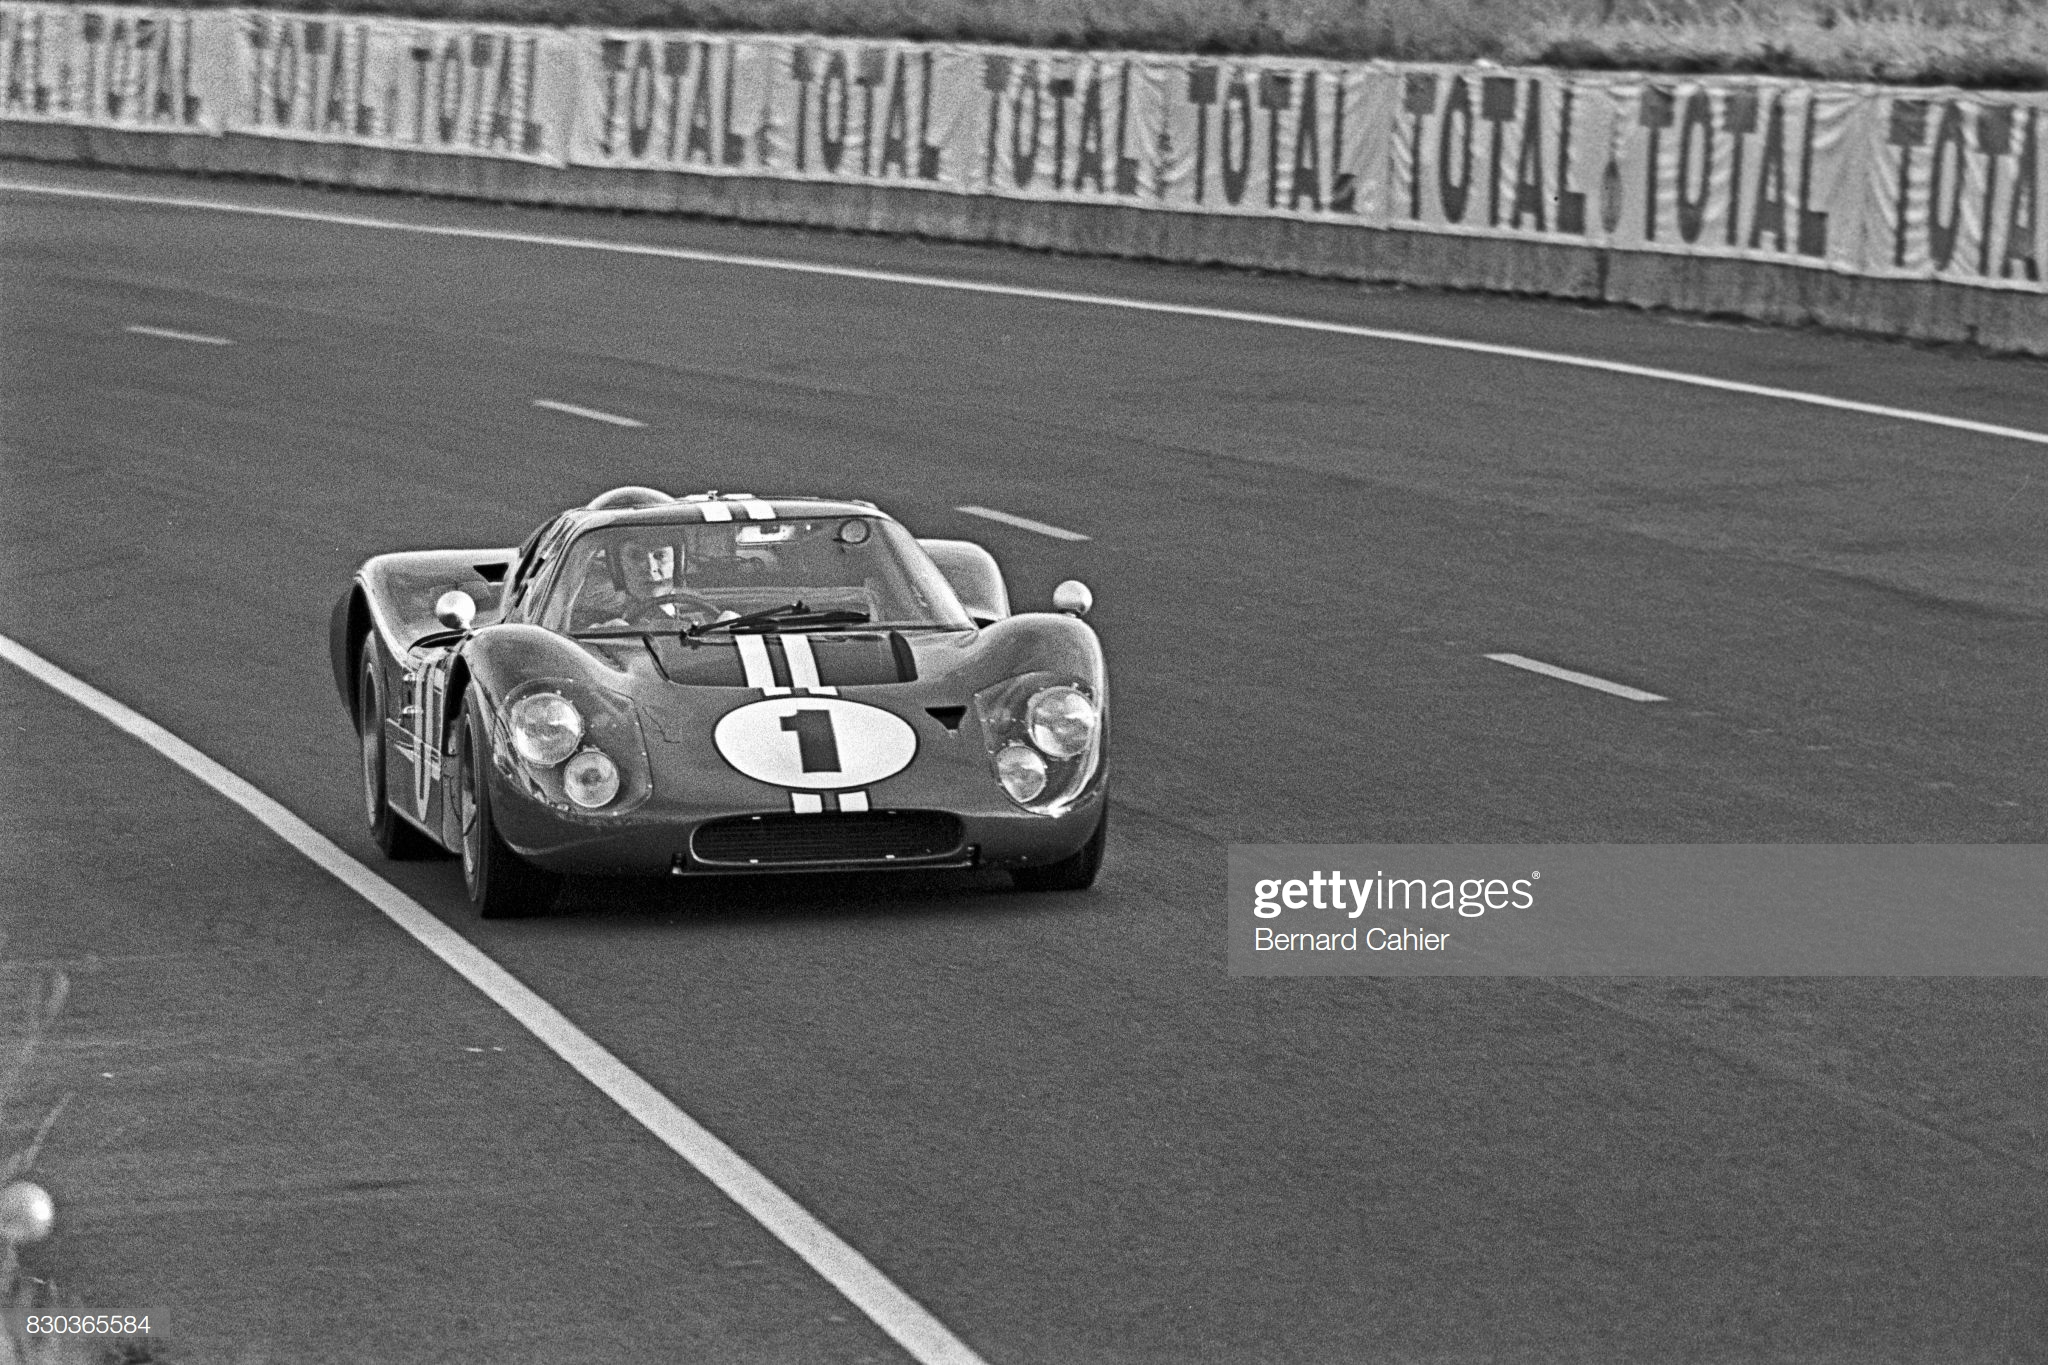 Dan Gurney, Ford Mk IV, 24 Hours of Le Mans, 11 June 1967 - Photo by Bernard Cahier/Getty Images